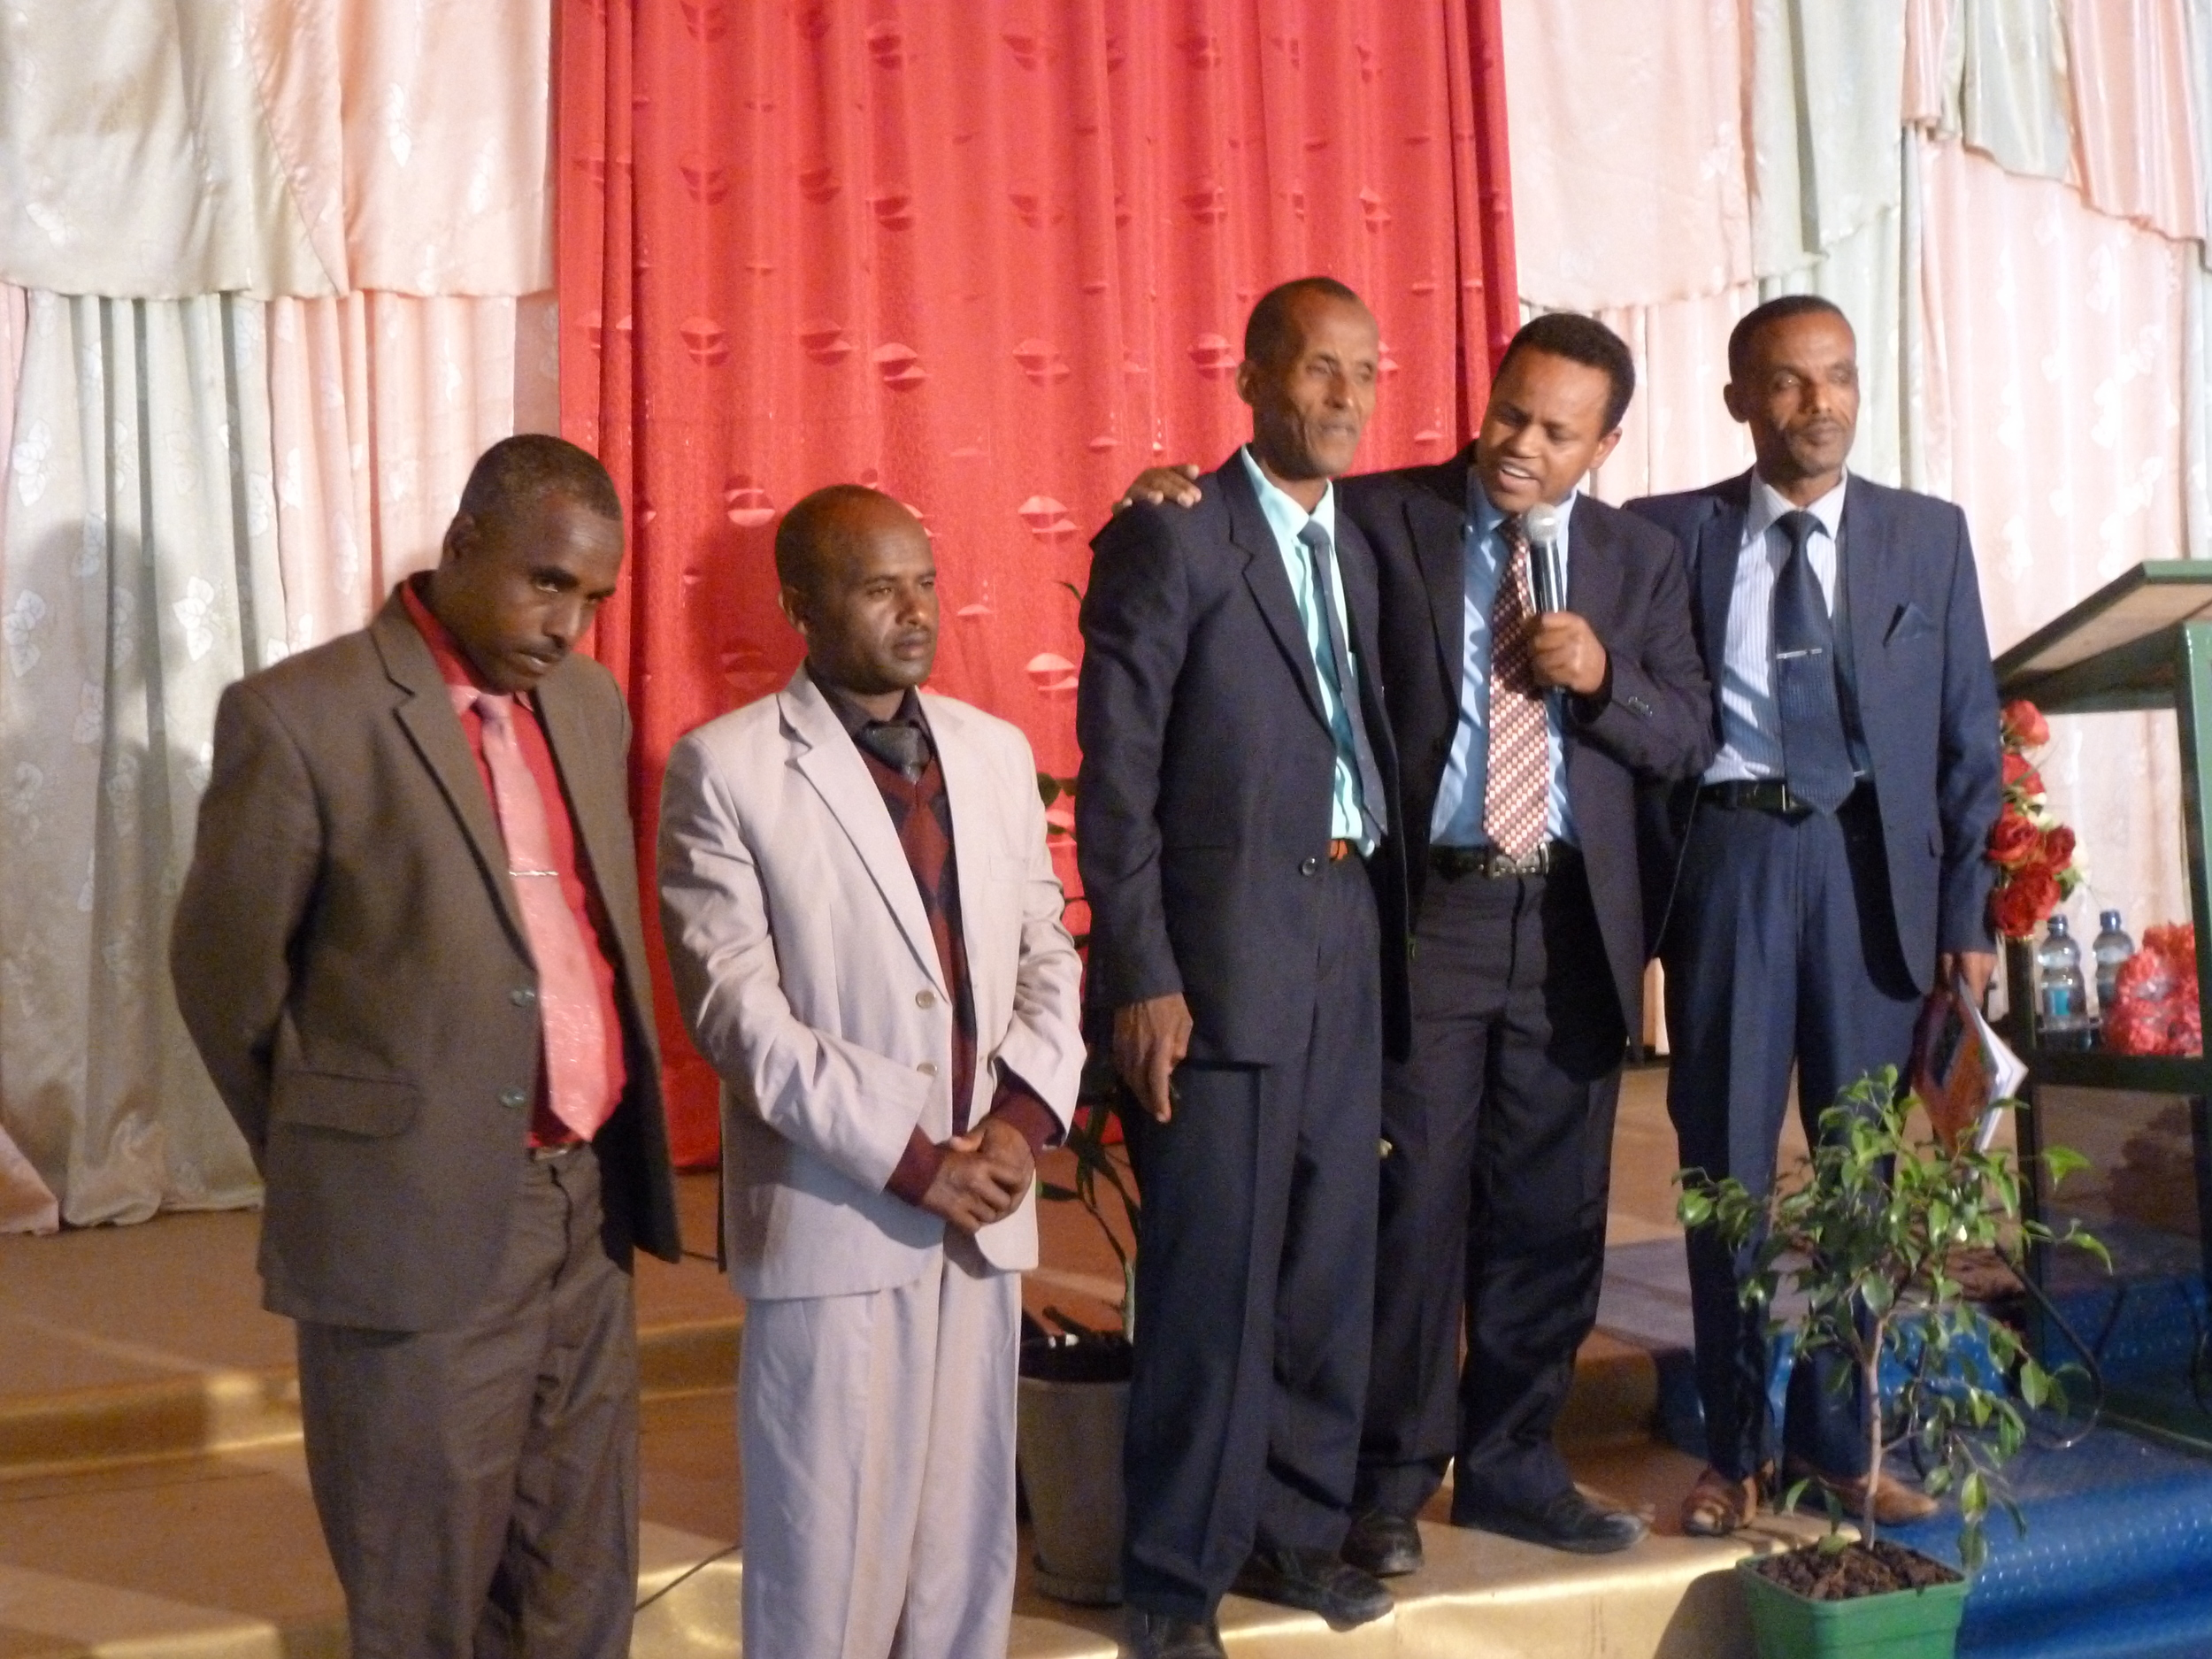 4 of our first pioneer evangelists with Mulugeta with the microphone, my right hand man